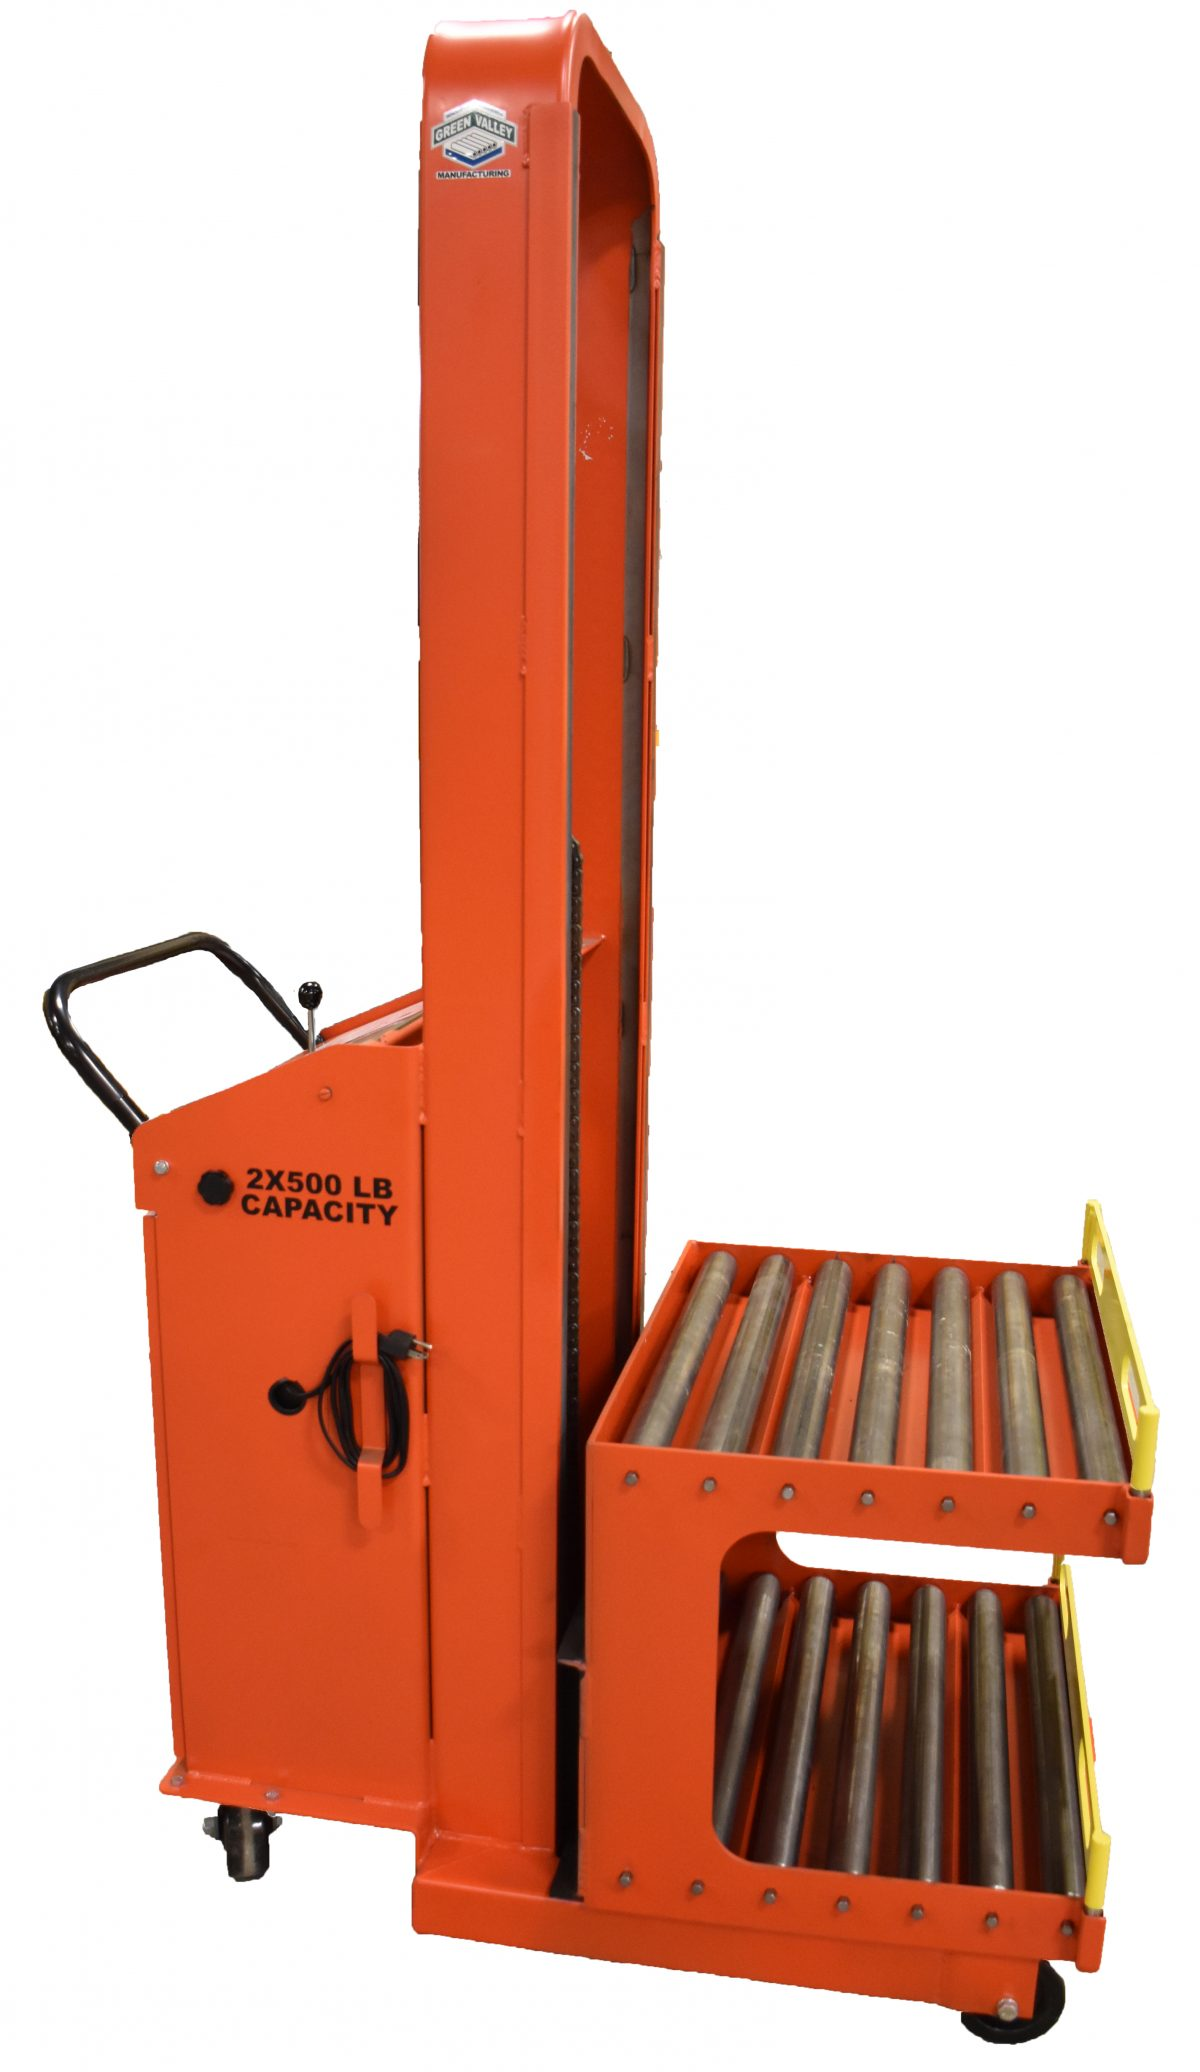 2 X 300 lb Double Station Mold Cart